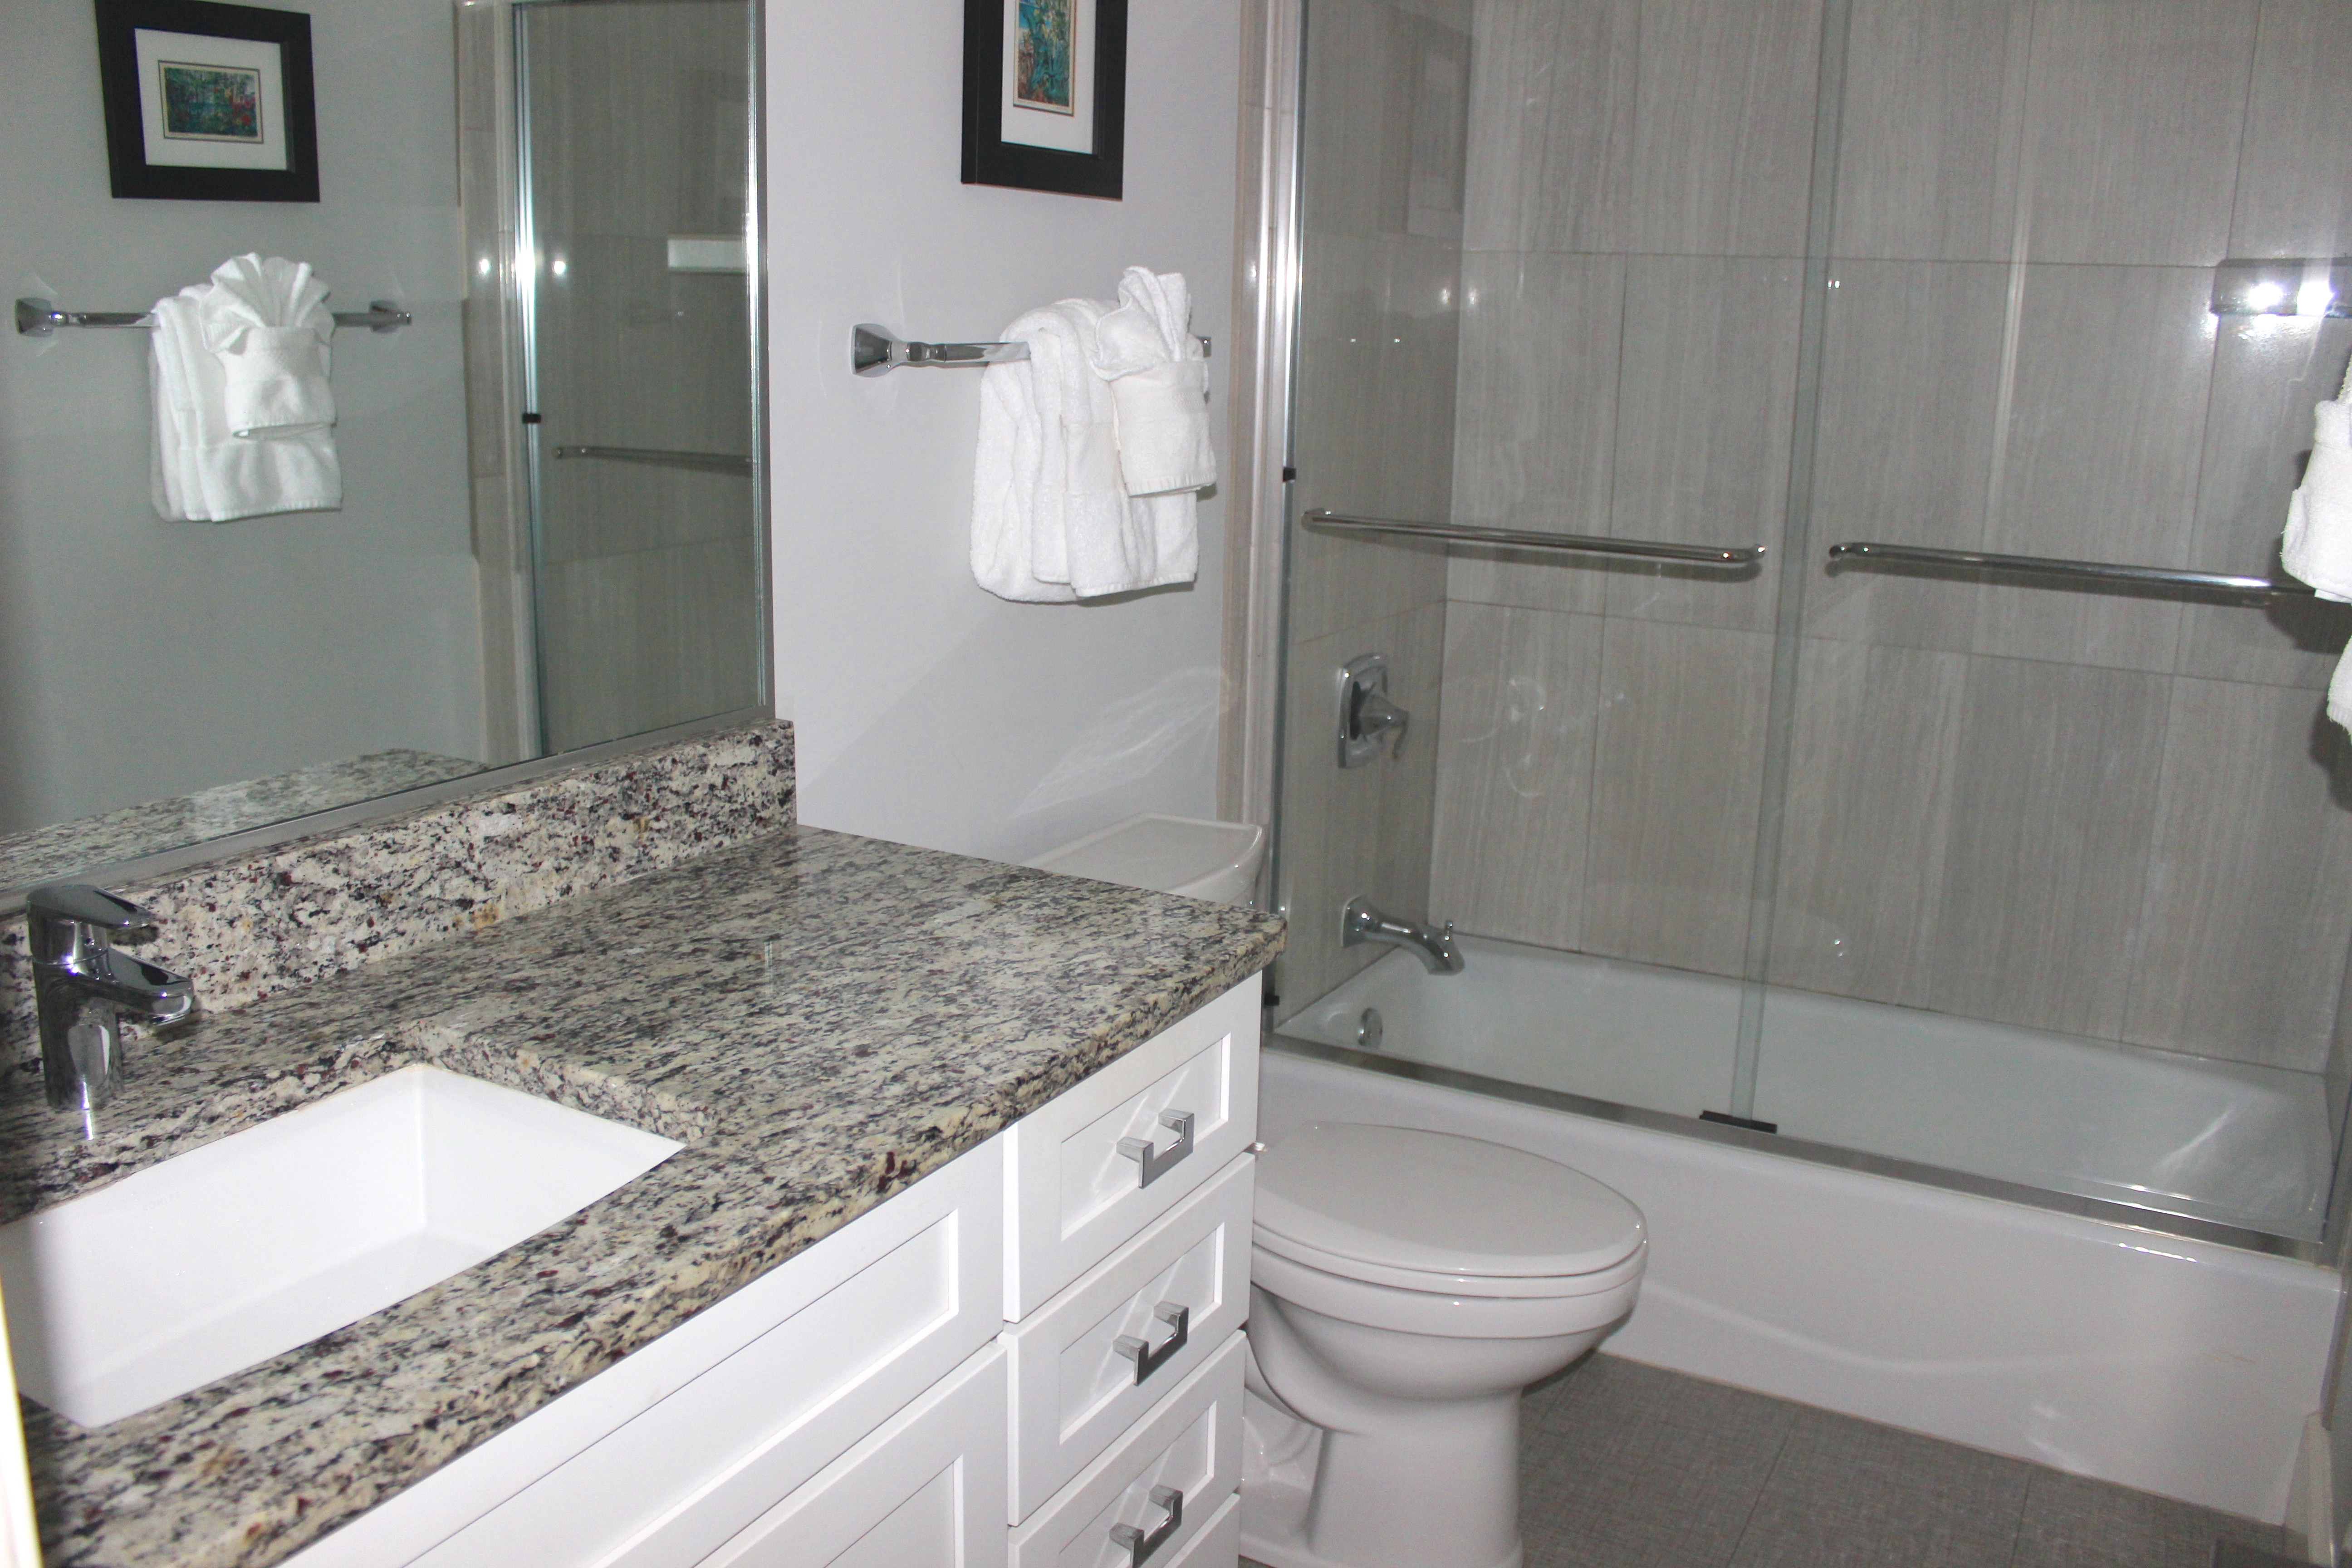 The en suite bath has a tiled tub/shower and large granite topped vanity.